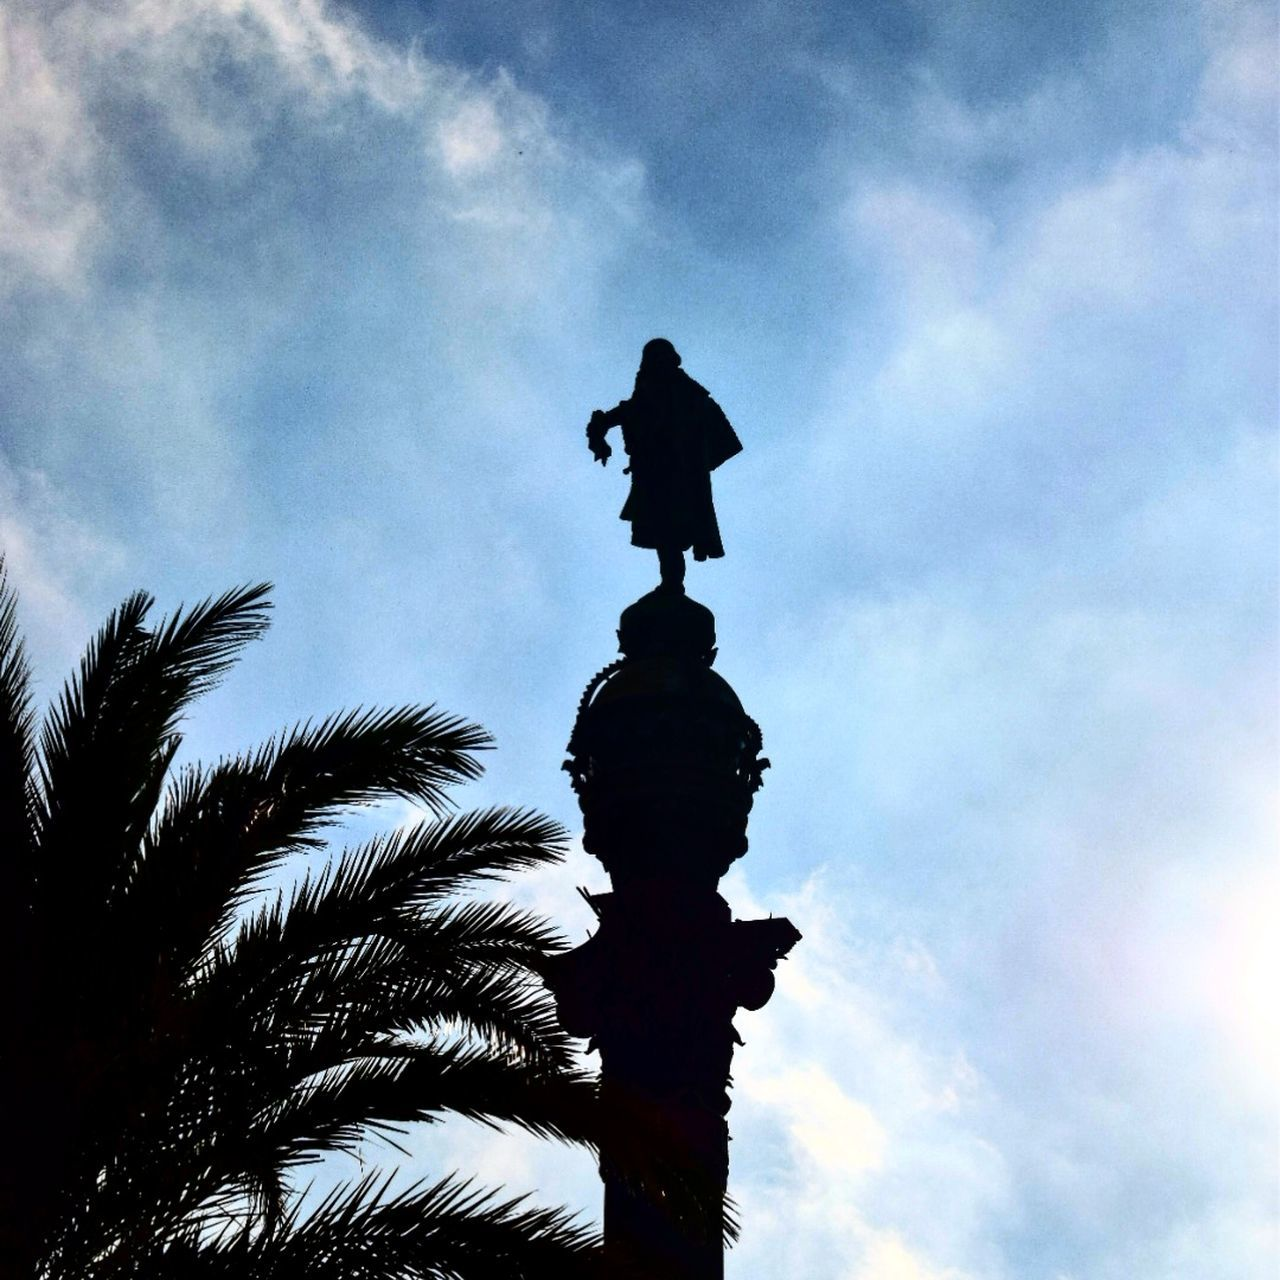 Columbus statue. Columbus Christopher Columbus Statue Sculpture Monument Silhouette Sky Outdoors Clouds Clouds And Sky Clouds & Sky Sky And Clouds Sky & Clouds Eyeem Silhouette EyeEm Silouette Best Pics Clouds Collection Sky_collection Barcelona Catalonia EyeEm Gallery Eyeem Christmas EyeEm Best Edits EyeEm Pictures EyeEm Best Shots EyeEm Best Pics